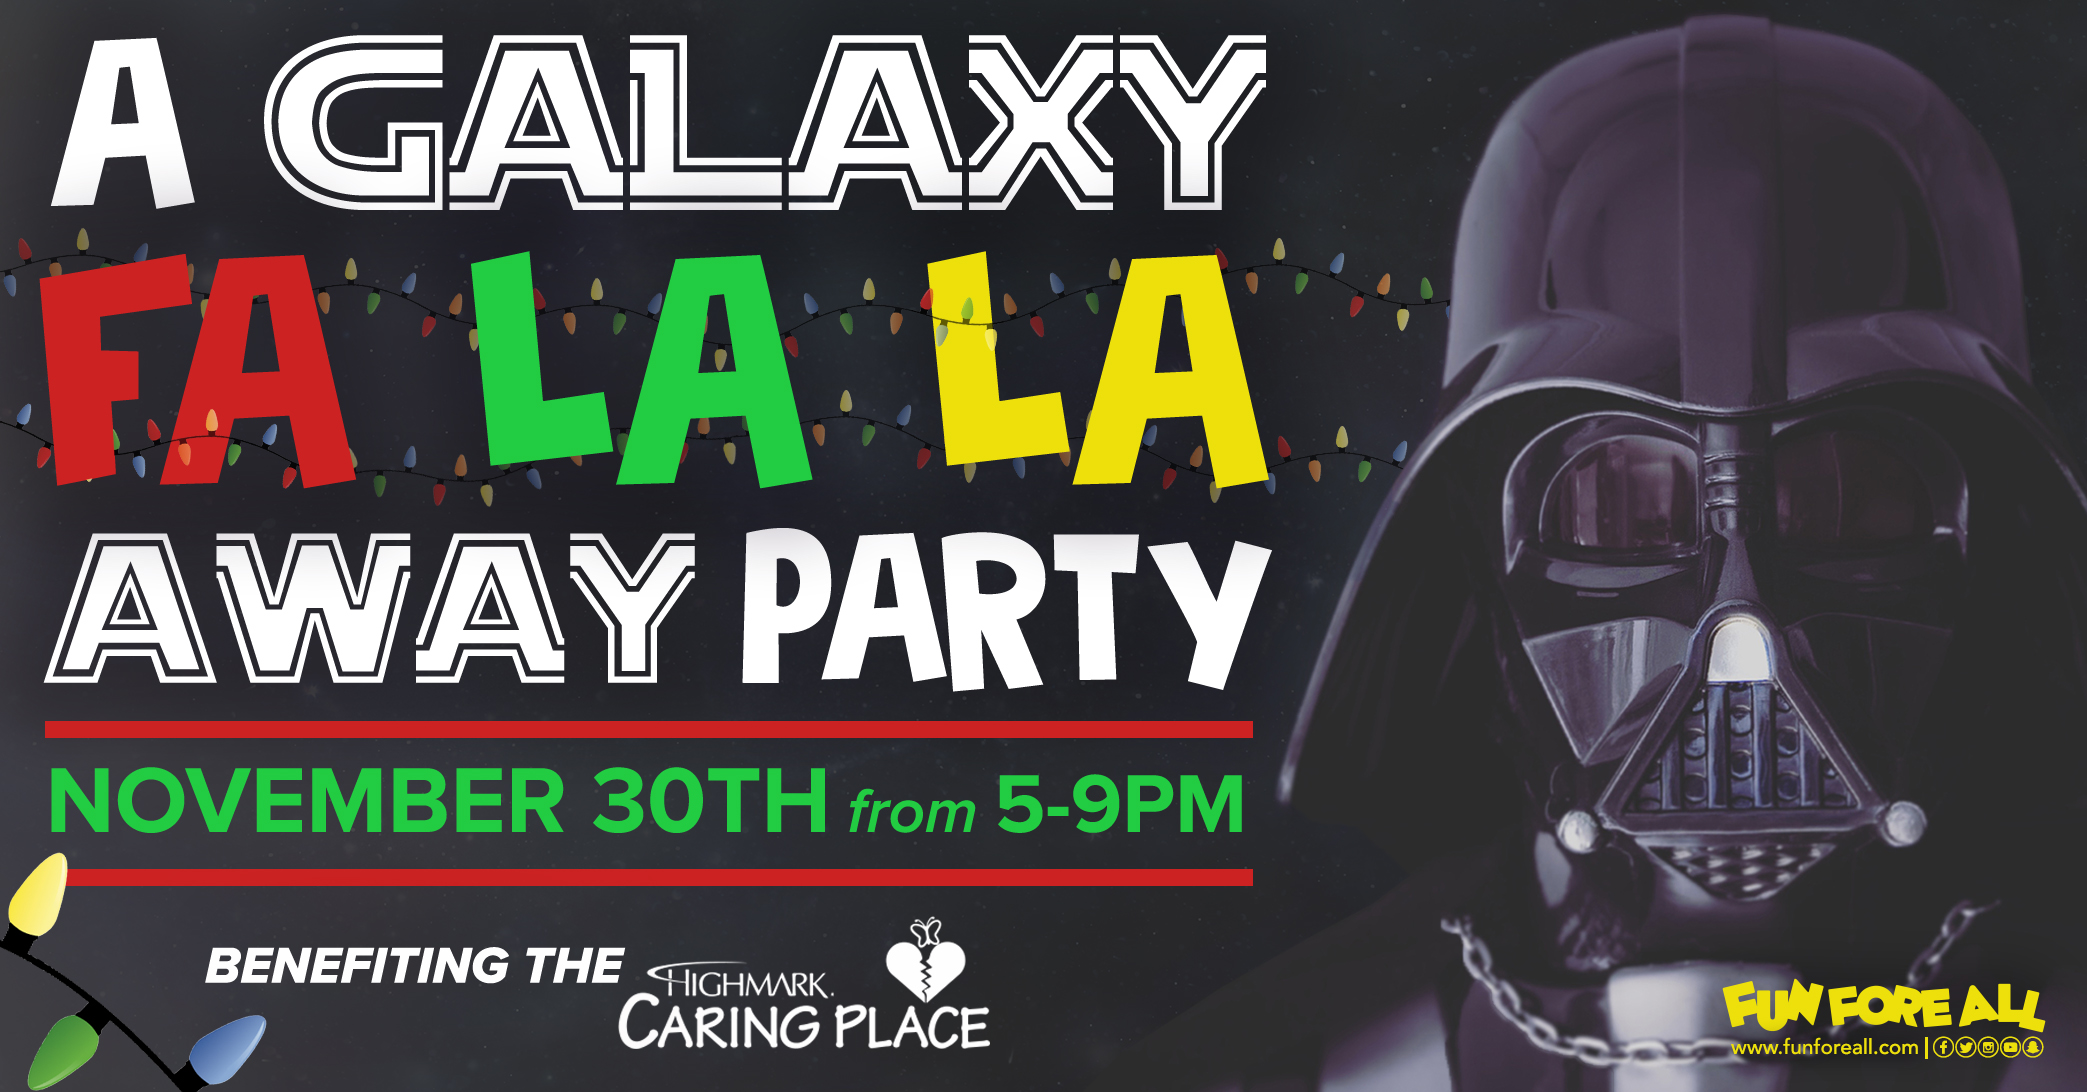 Facebook Invite (Holiday Lights - A Galaxy Fa La La Away Party).jpg